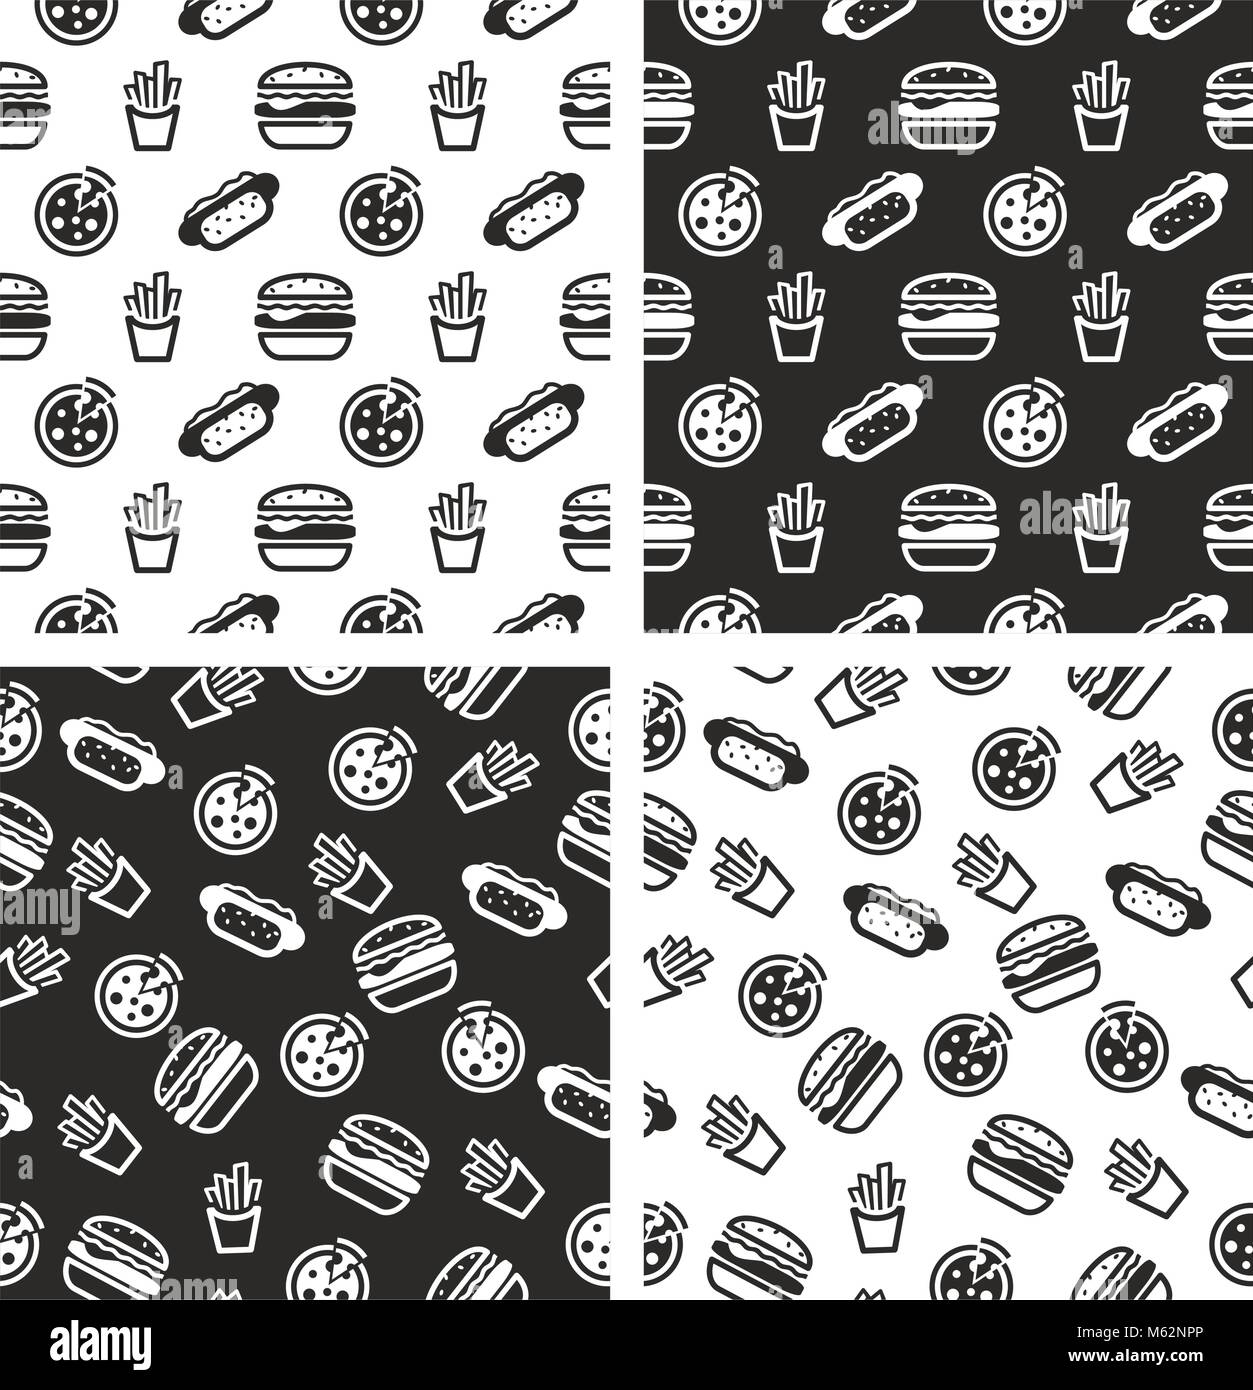 Fast Food Seamless Pattern Set - Stock Vector